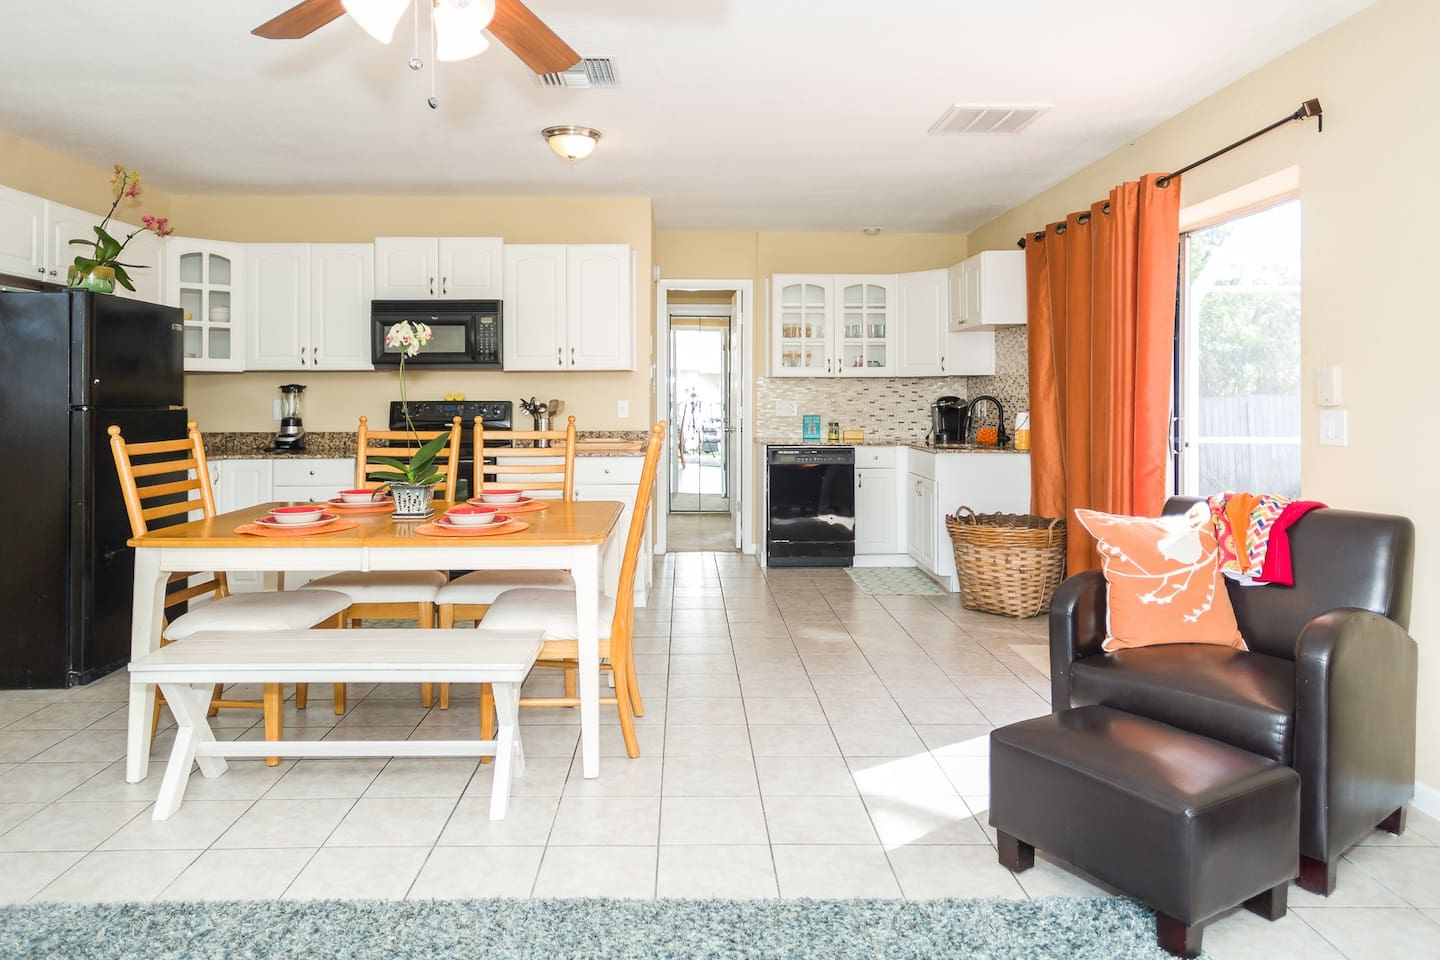 The Darling Dunedin - Guesthouses for Rent in Dunedin, Florida ...